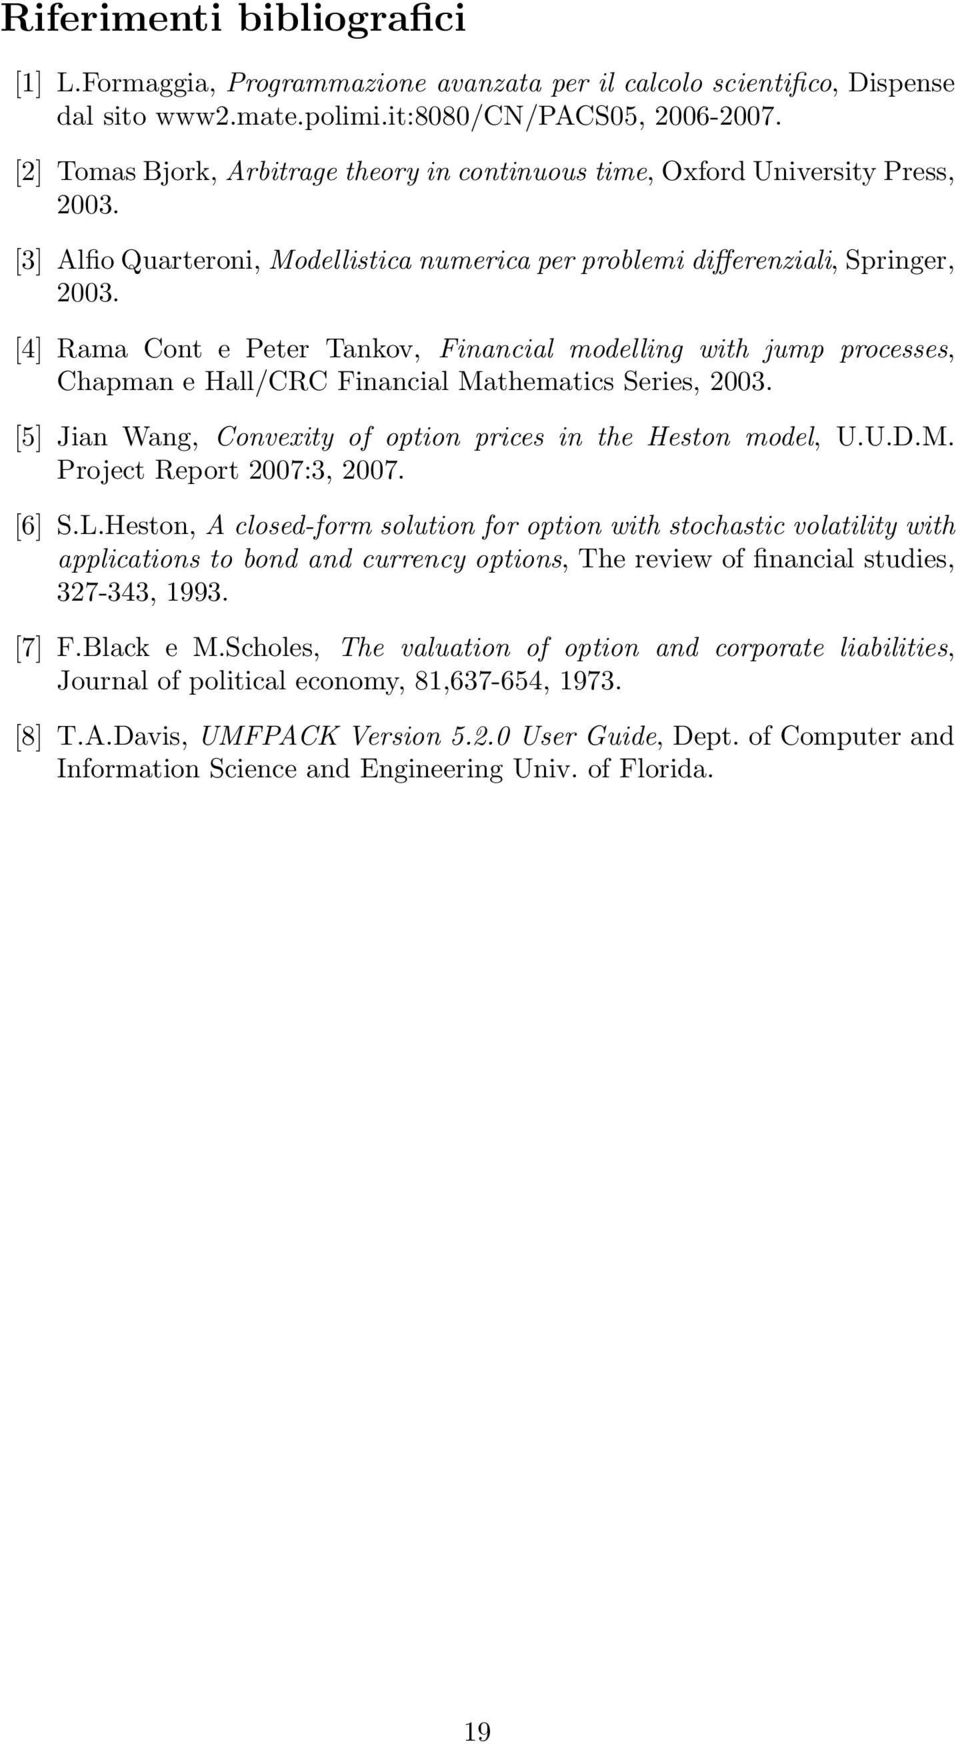 Hall/CRC Financial Mathematics Series, 3 [5] Jian Wang, Convexity of option prices in the Heston model, UUDM Project Report 7:3, 7 [6] SLHeston, A closed-form solution for option with stochastic